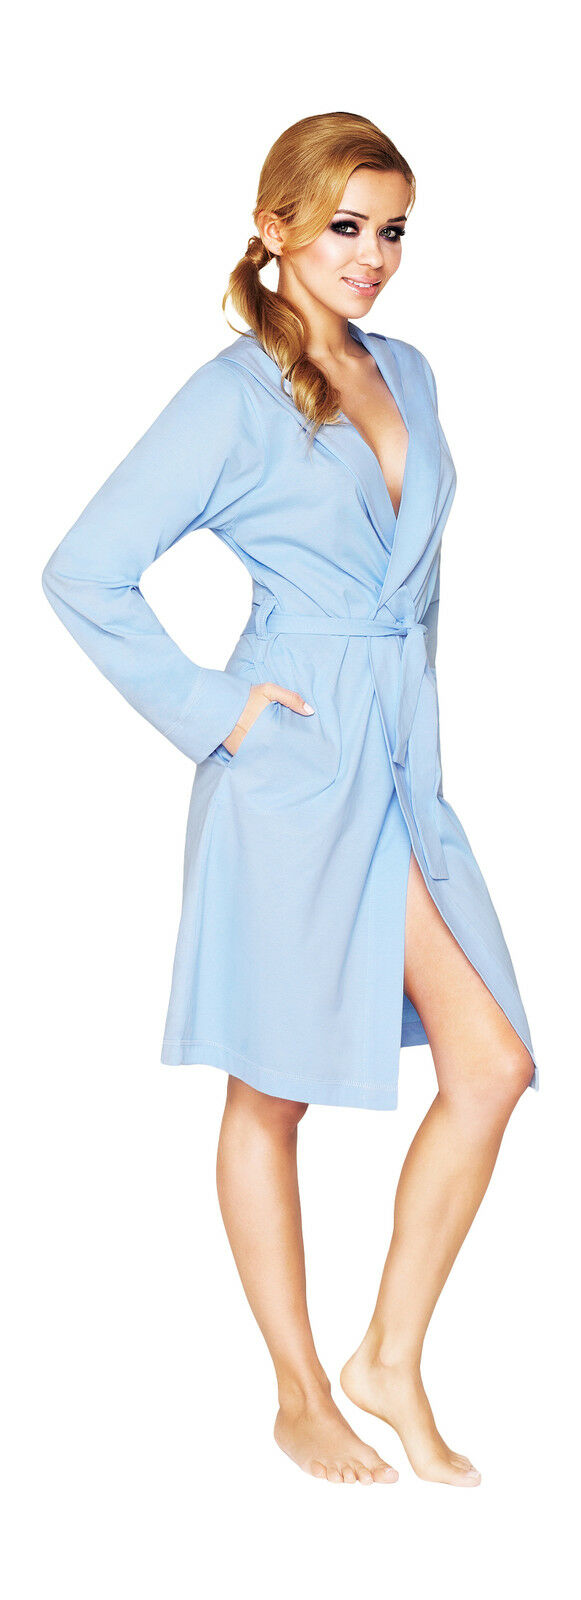 Shop the Matalan's range of women's nightwear including pyjamas, nighties & dressing gowns. Treat yourself to some new cosy nightwear this winter. Shop the Matalan's range of women's nightwear including pyjamas, nighties & dressing gowns. By browsing Matalan, you agree to our use of cookies.